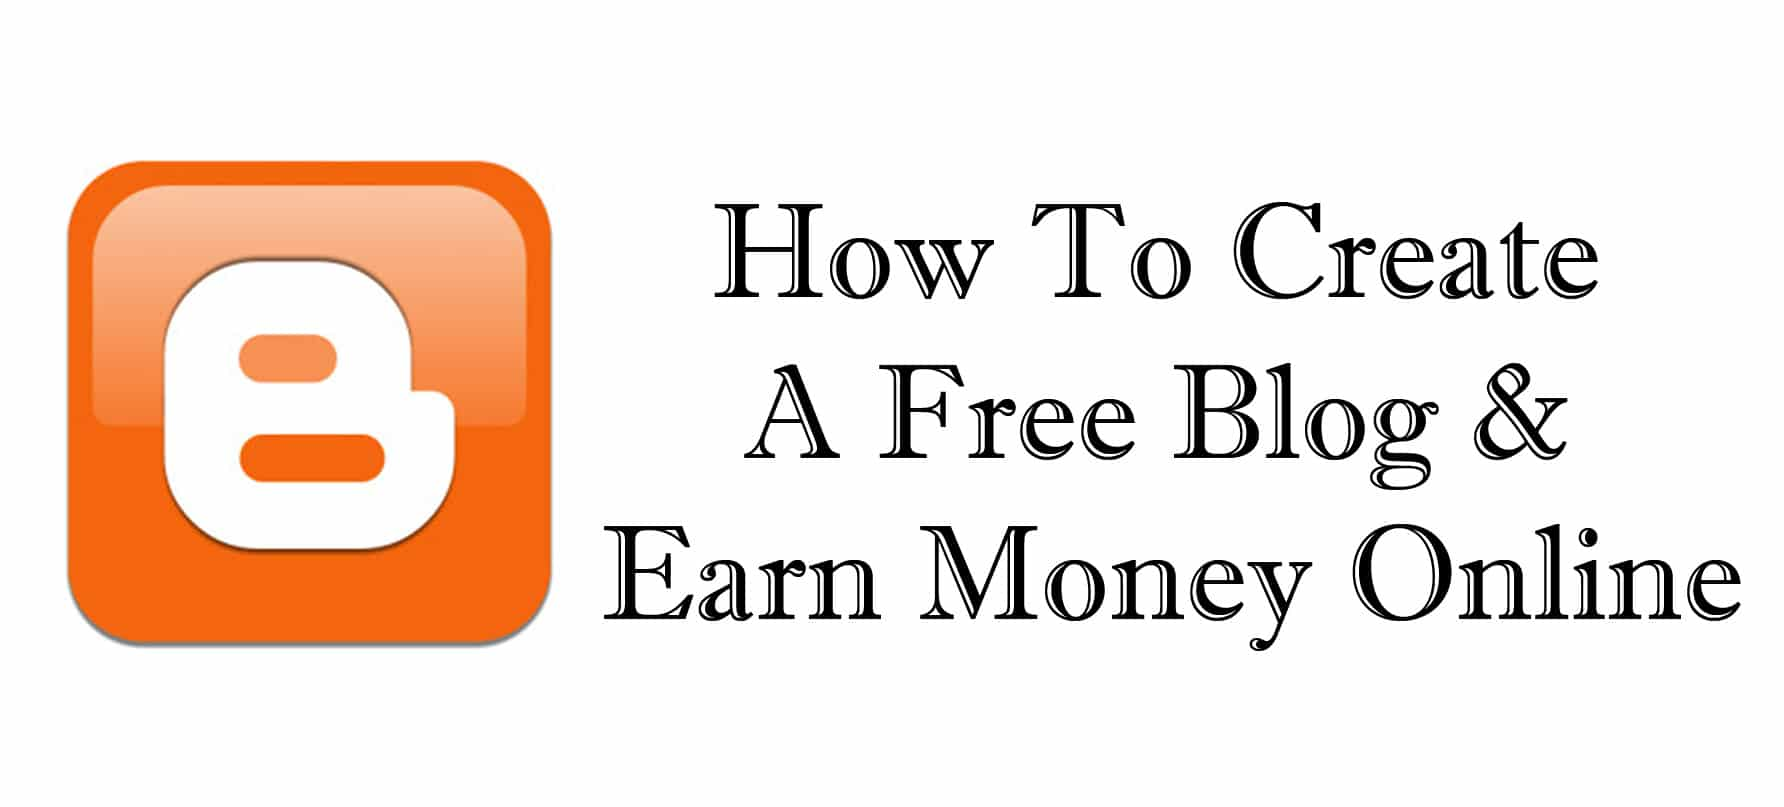 How to create a free blog earn money online step by for How to build a blog